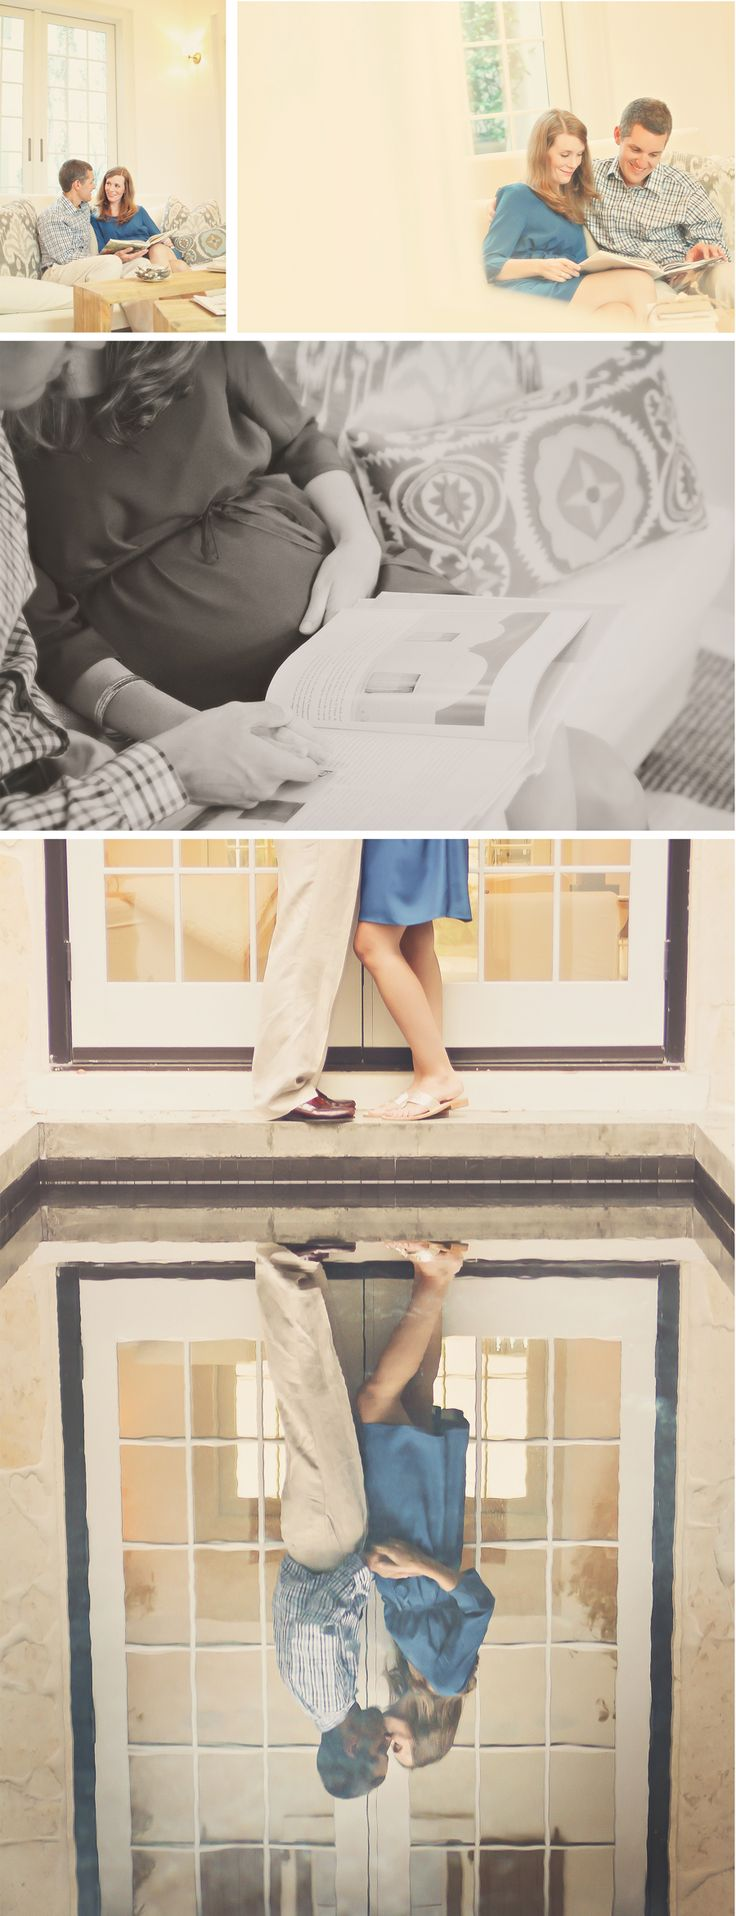 26 best Maternity indoor images on Pinterest